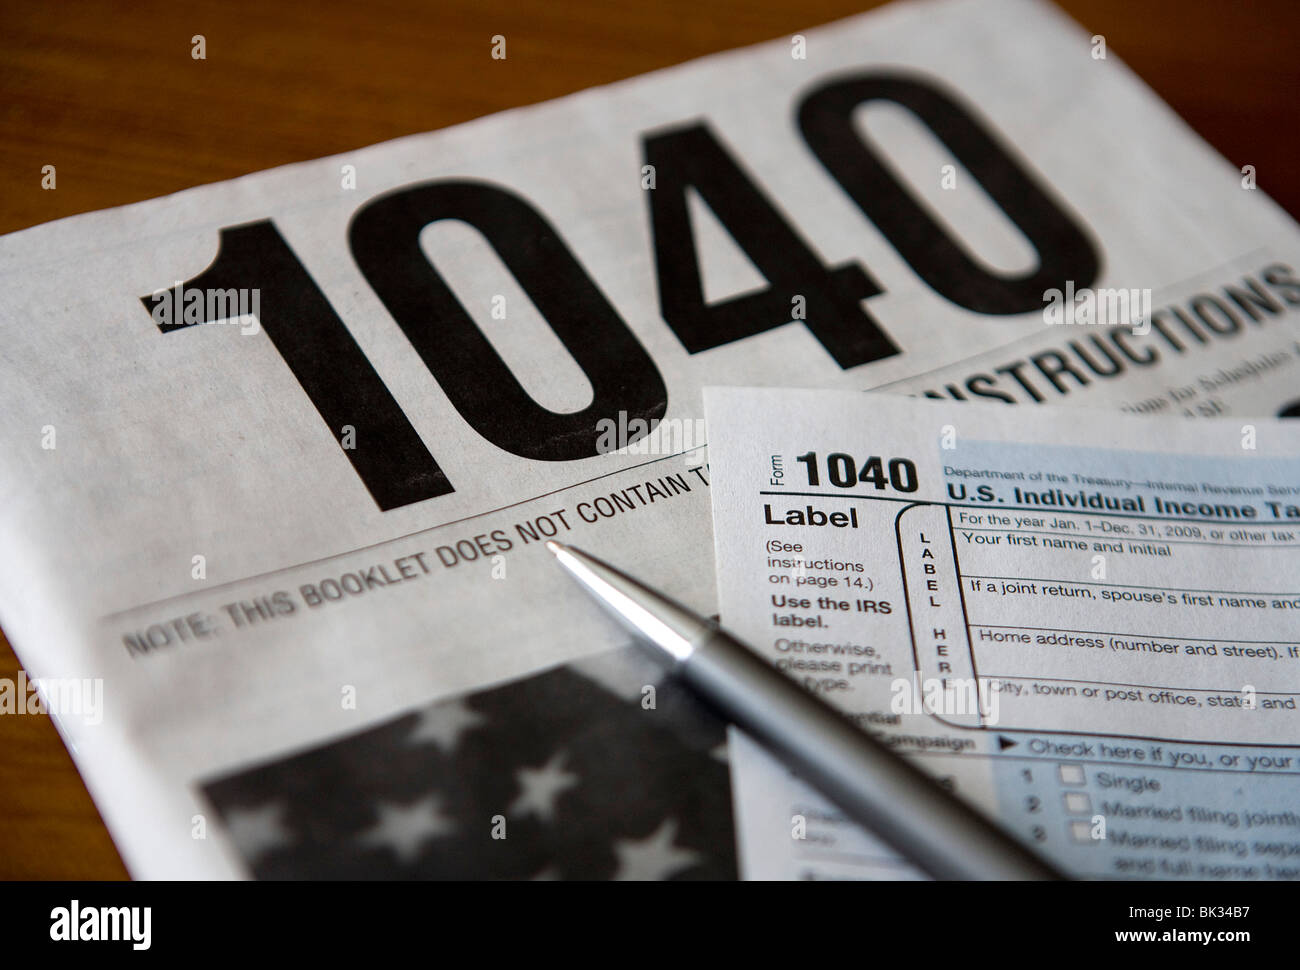 A United States Income Tax 1040 form. - Stock Image